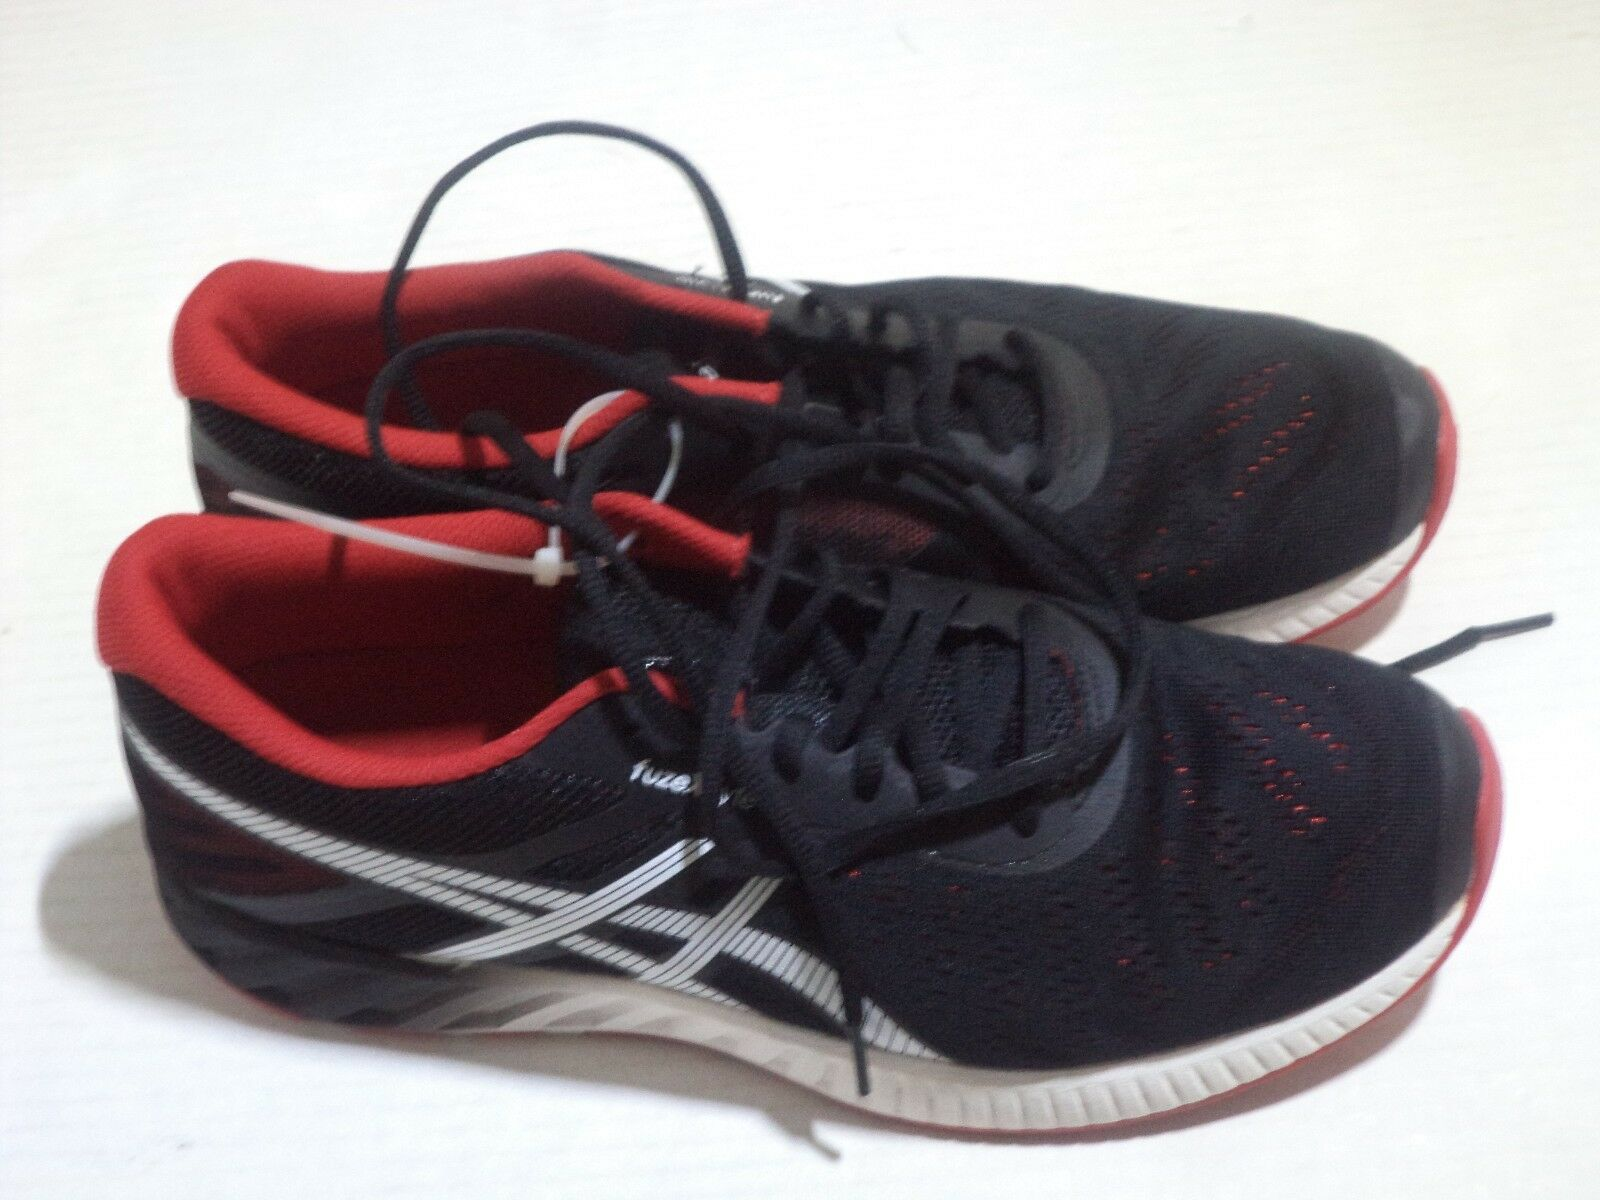 ASICS Men FuzeX Lyte Athletic Running Shoe Size 11 Color Black/Racing Red White